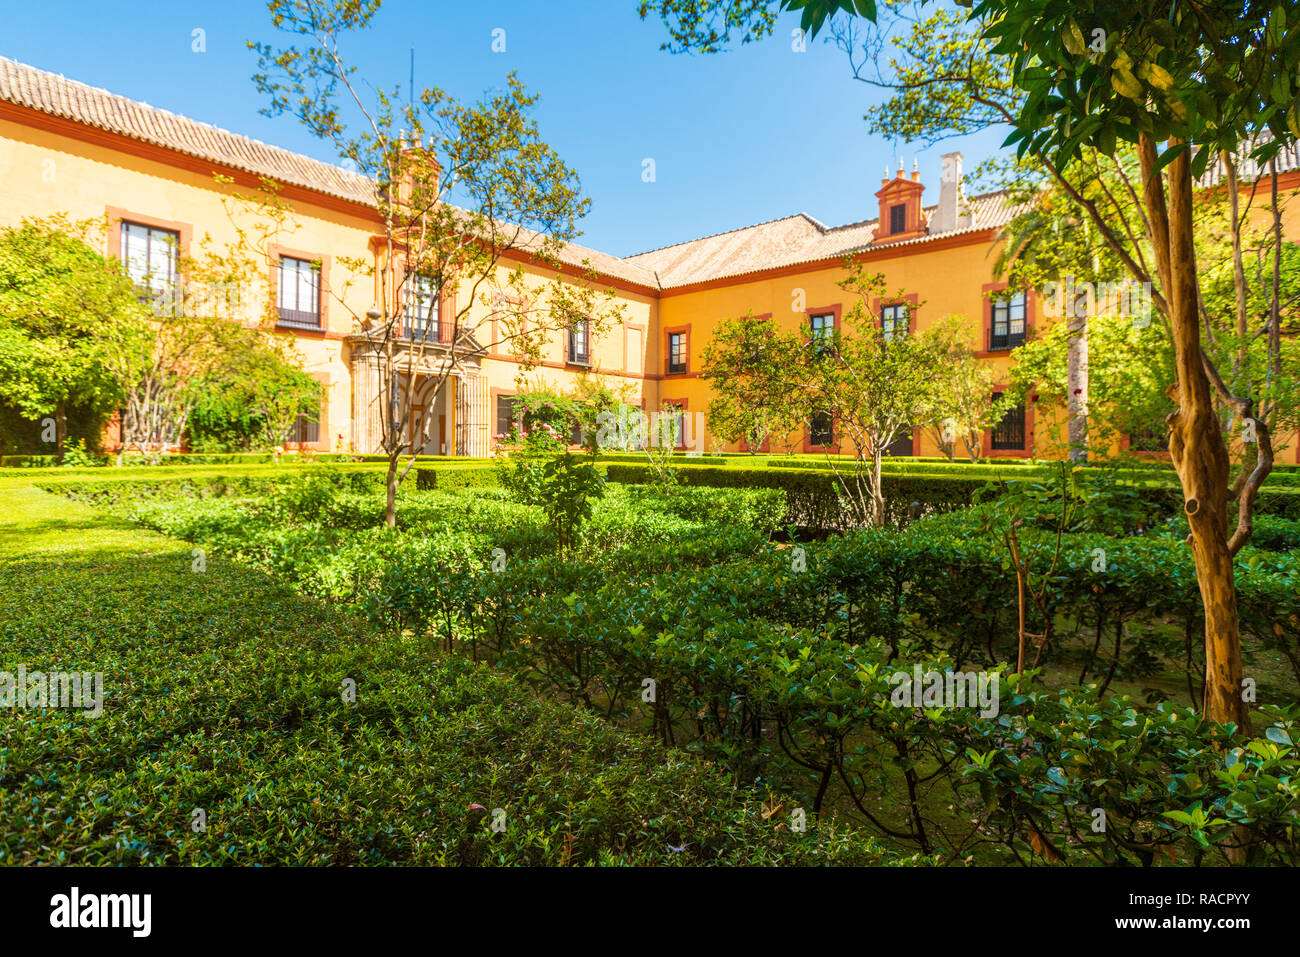 Lush gardens and hedges in the courtyards and outdoor areas of the Real Alcazar, UNESCO World Heritage Site, Seville, Andalusia, Spain, Europe - Stock Image